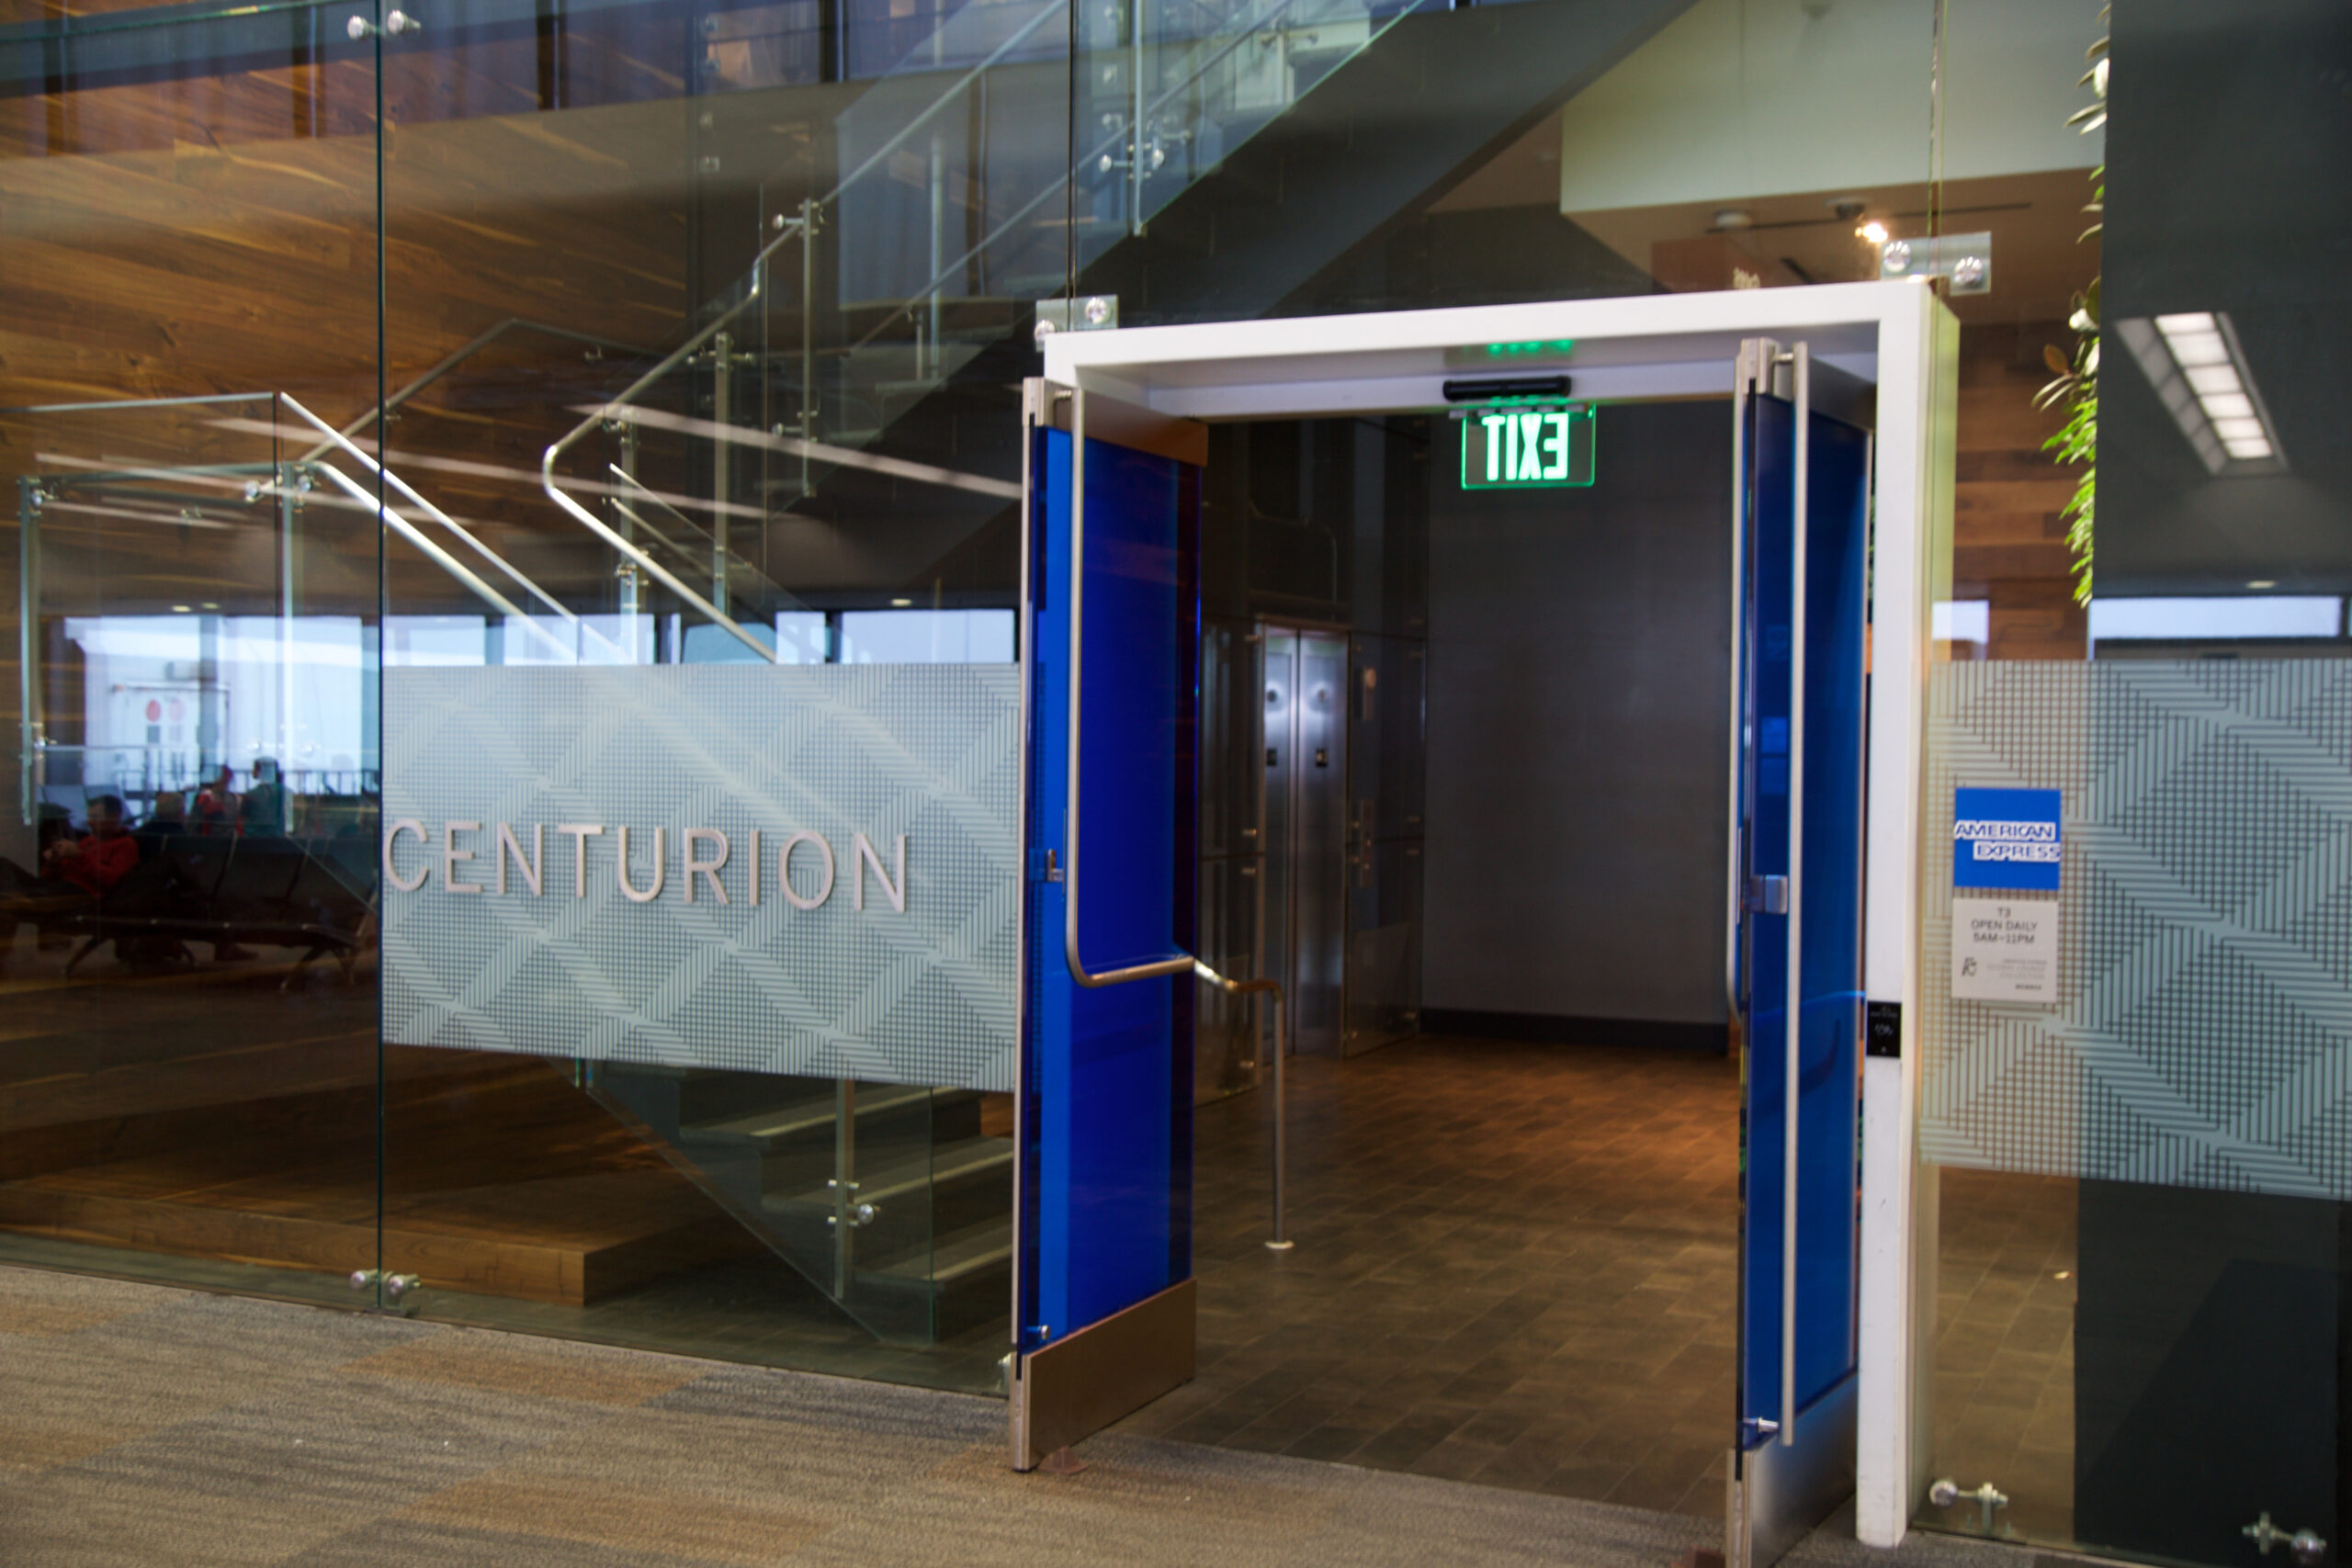 Entrance of the American Express Centurion Lounge at the San Francisco Airport SFO